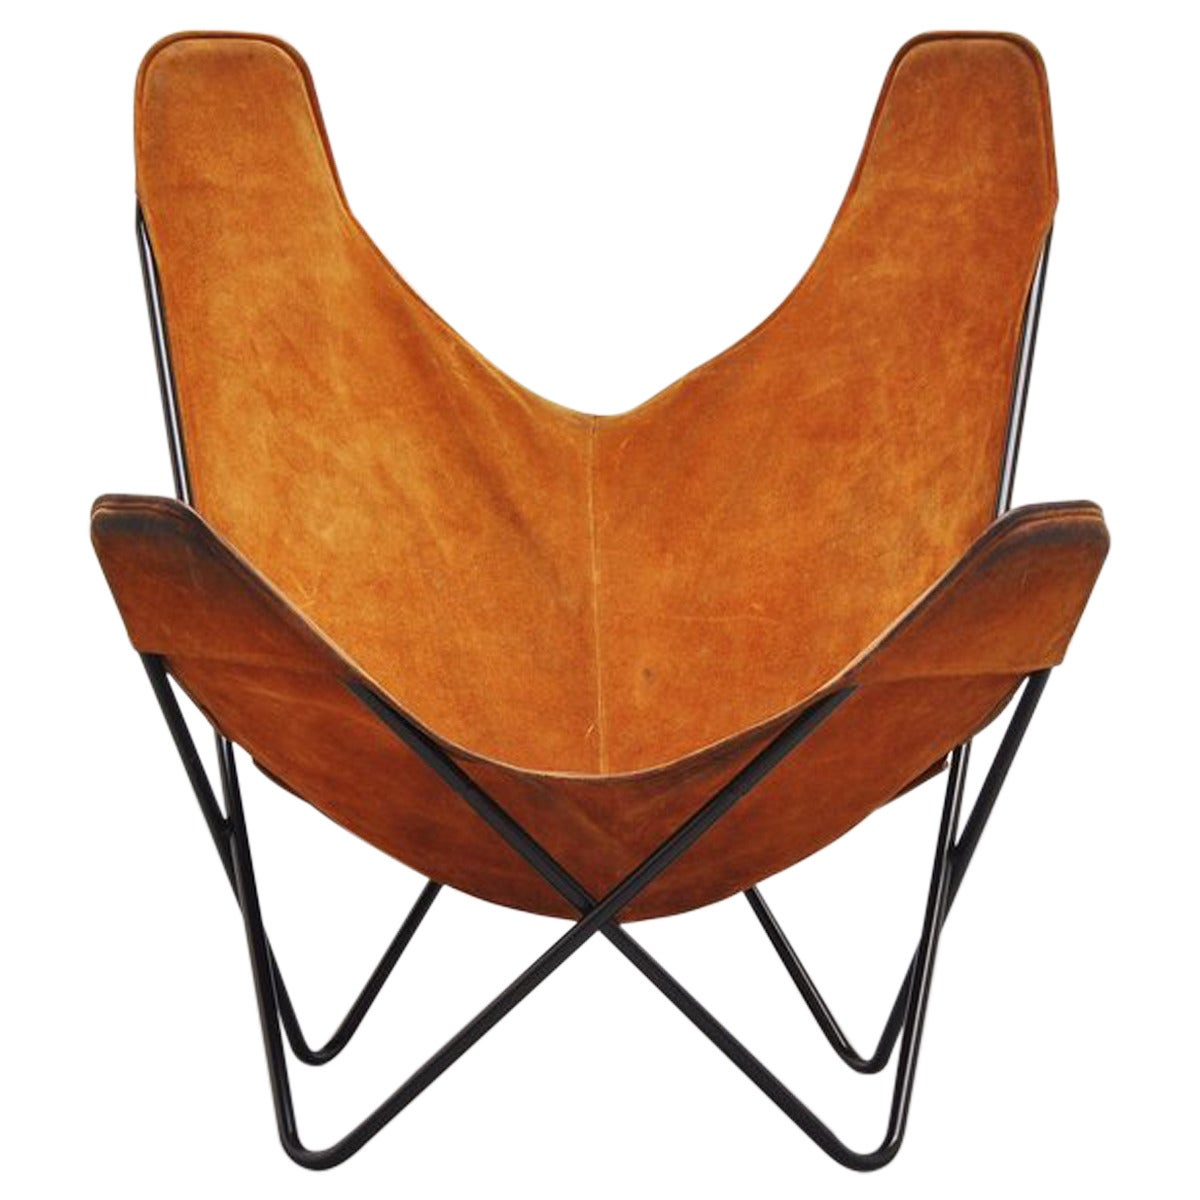 butterfly chair by jorge hardoy ferrari for knoll 1970 for. Black Bedroom Furniture Sets. Home Design Ideas